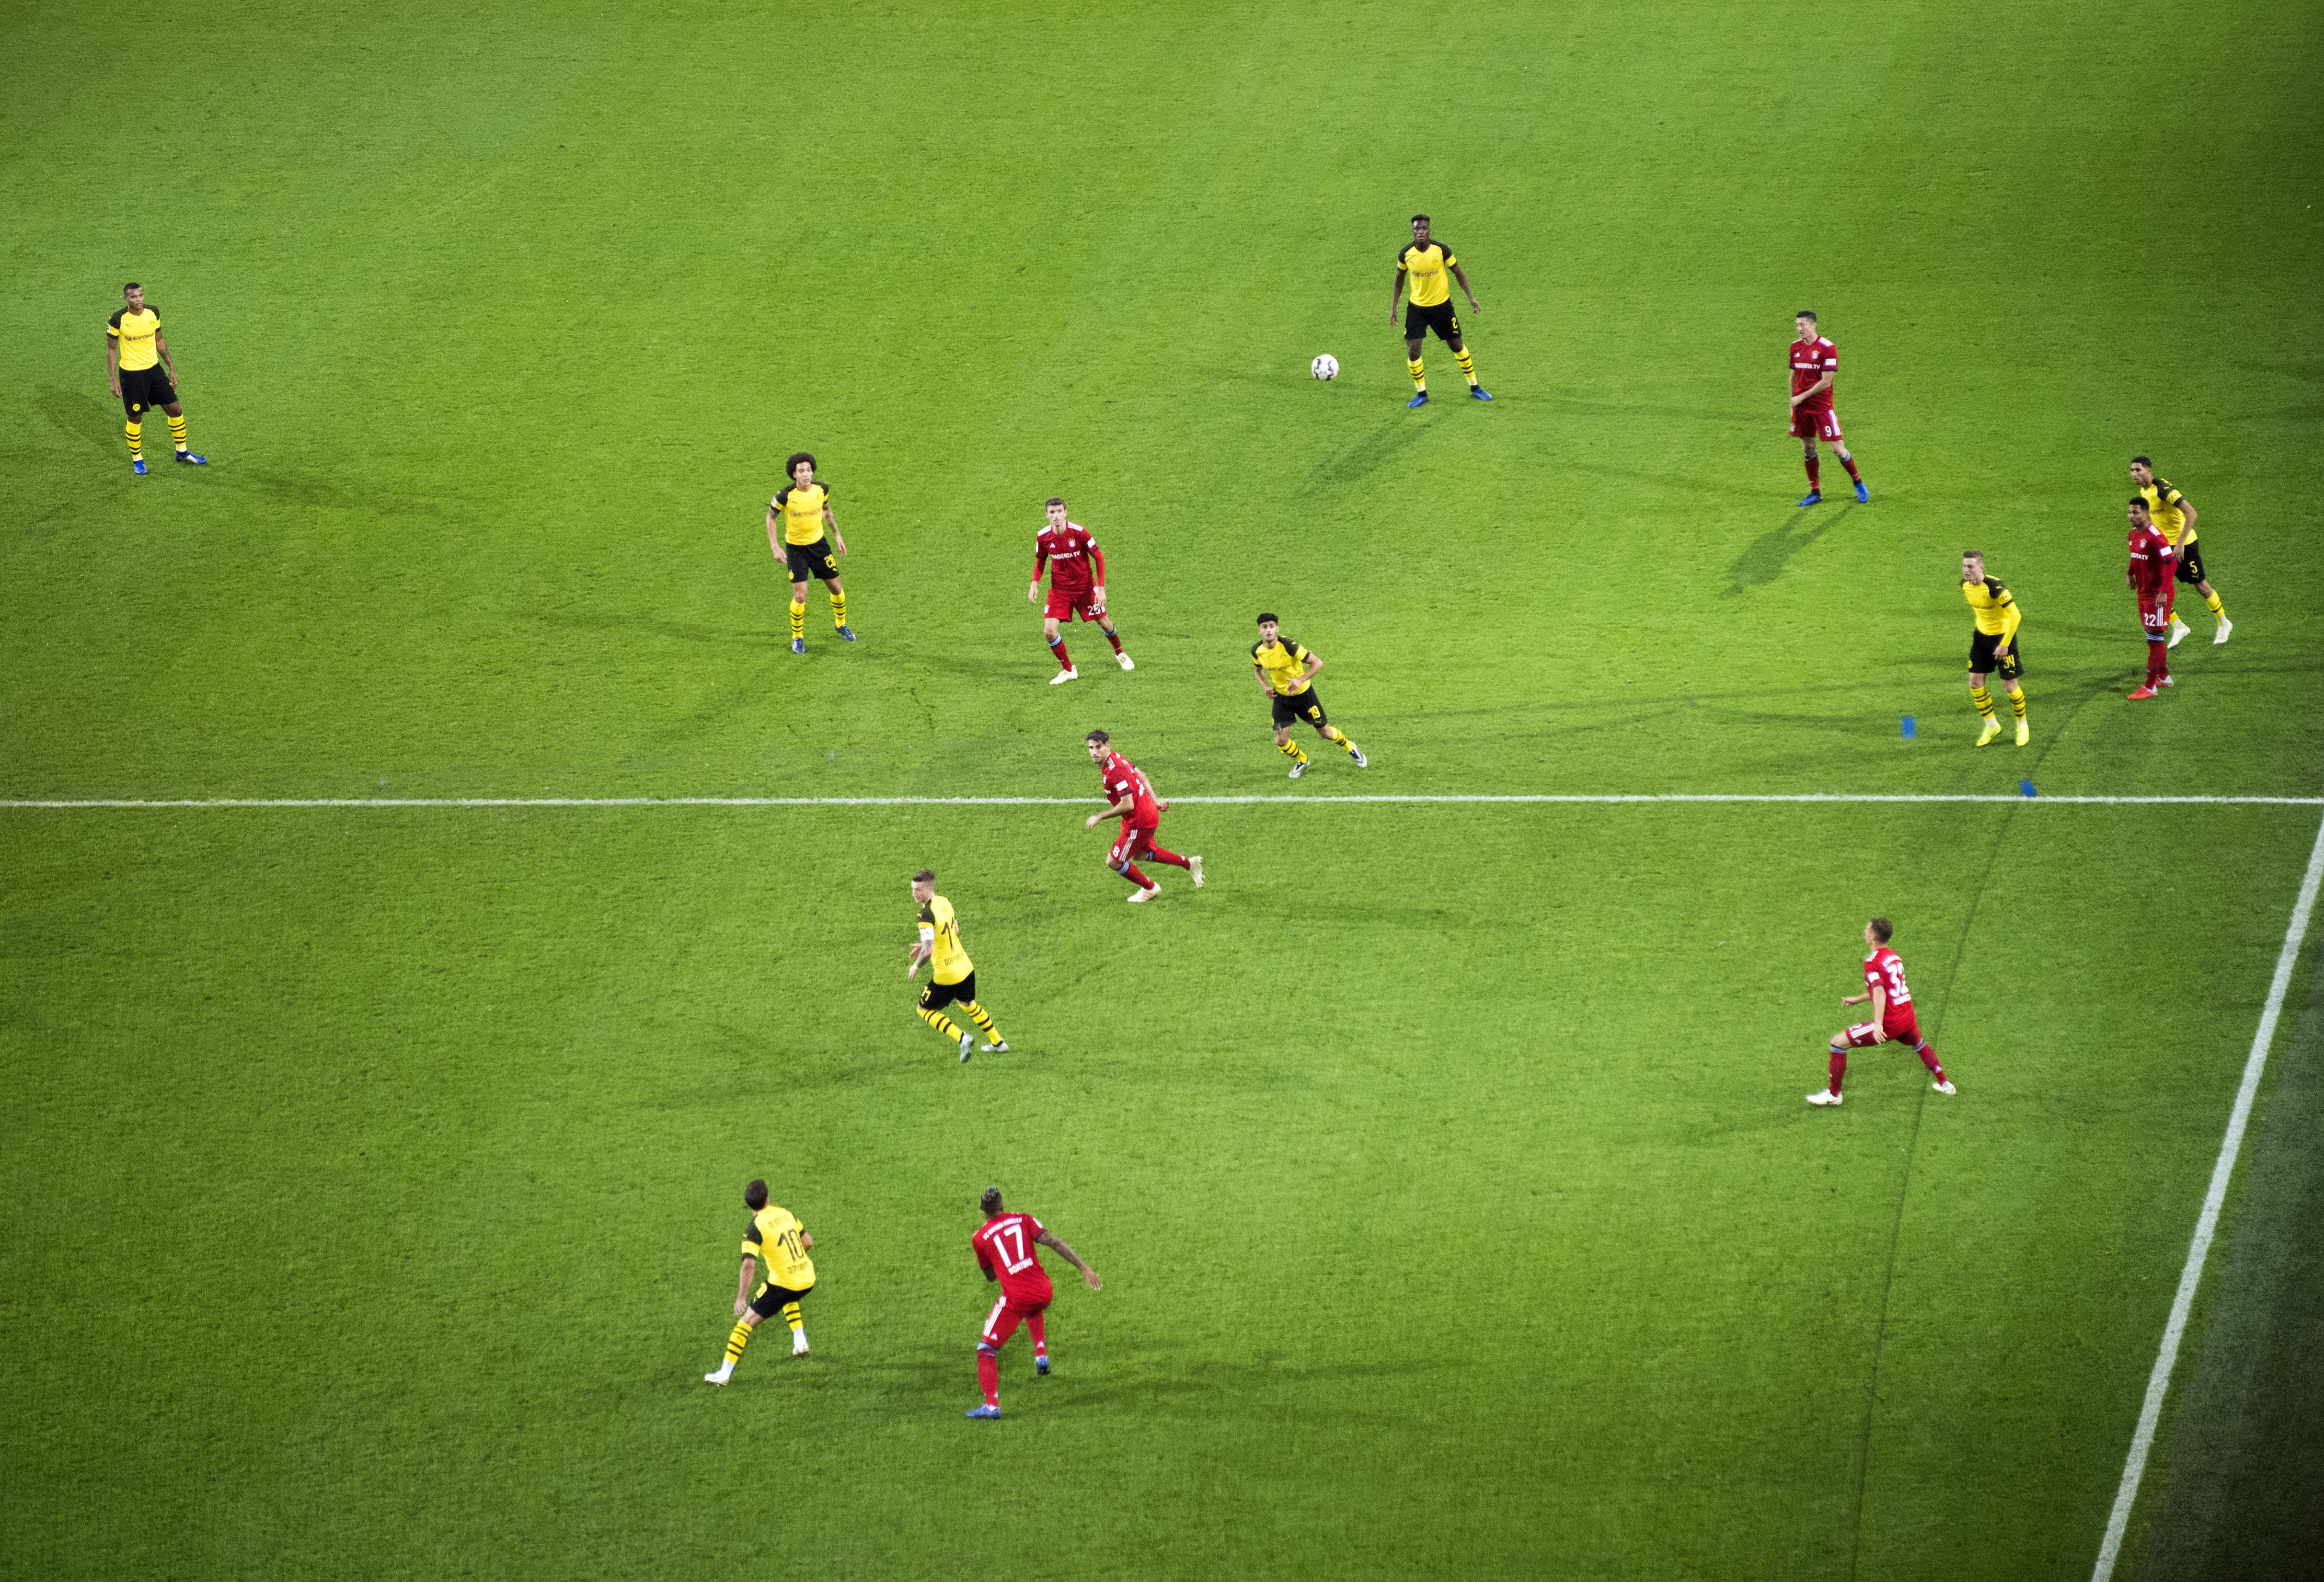 Bayern and Dortmund renew rivalries in a huge game at the weekend. Image: PA Images